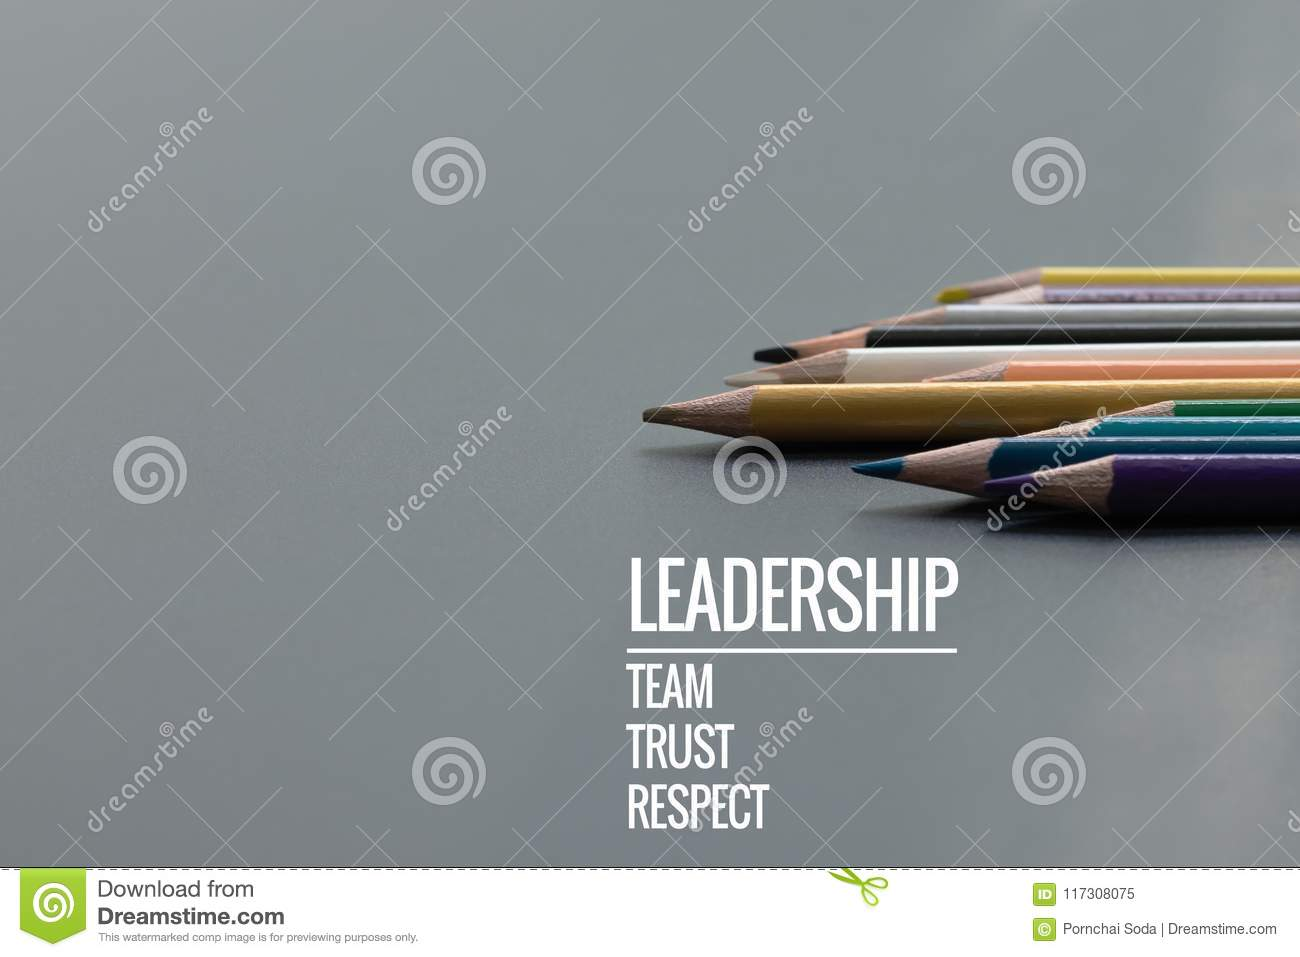 Leadership business concept. Gold color pencil lead other color with word Leadership, team, trust and respect on black background